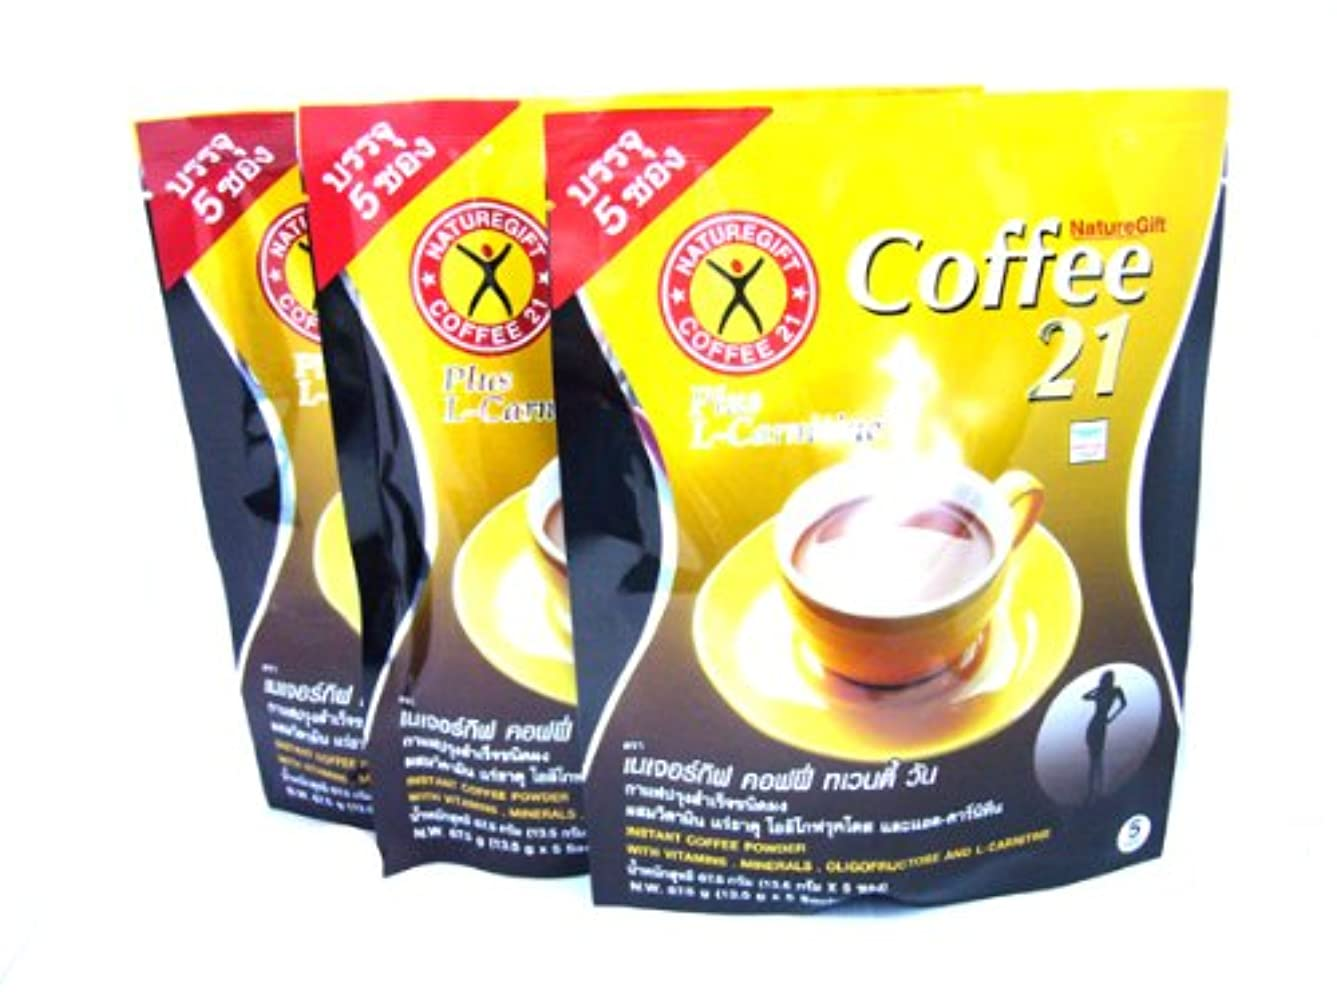 夫婦エステート改革3x Naturegift Instant Coffee Mix 21 Plus L-carnitine Slimming Weight Loss Diet Made in Thailand by alanroger